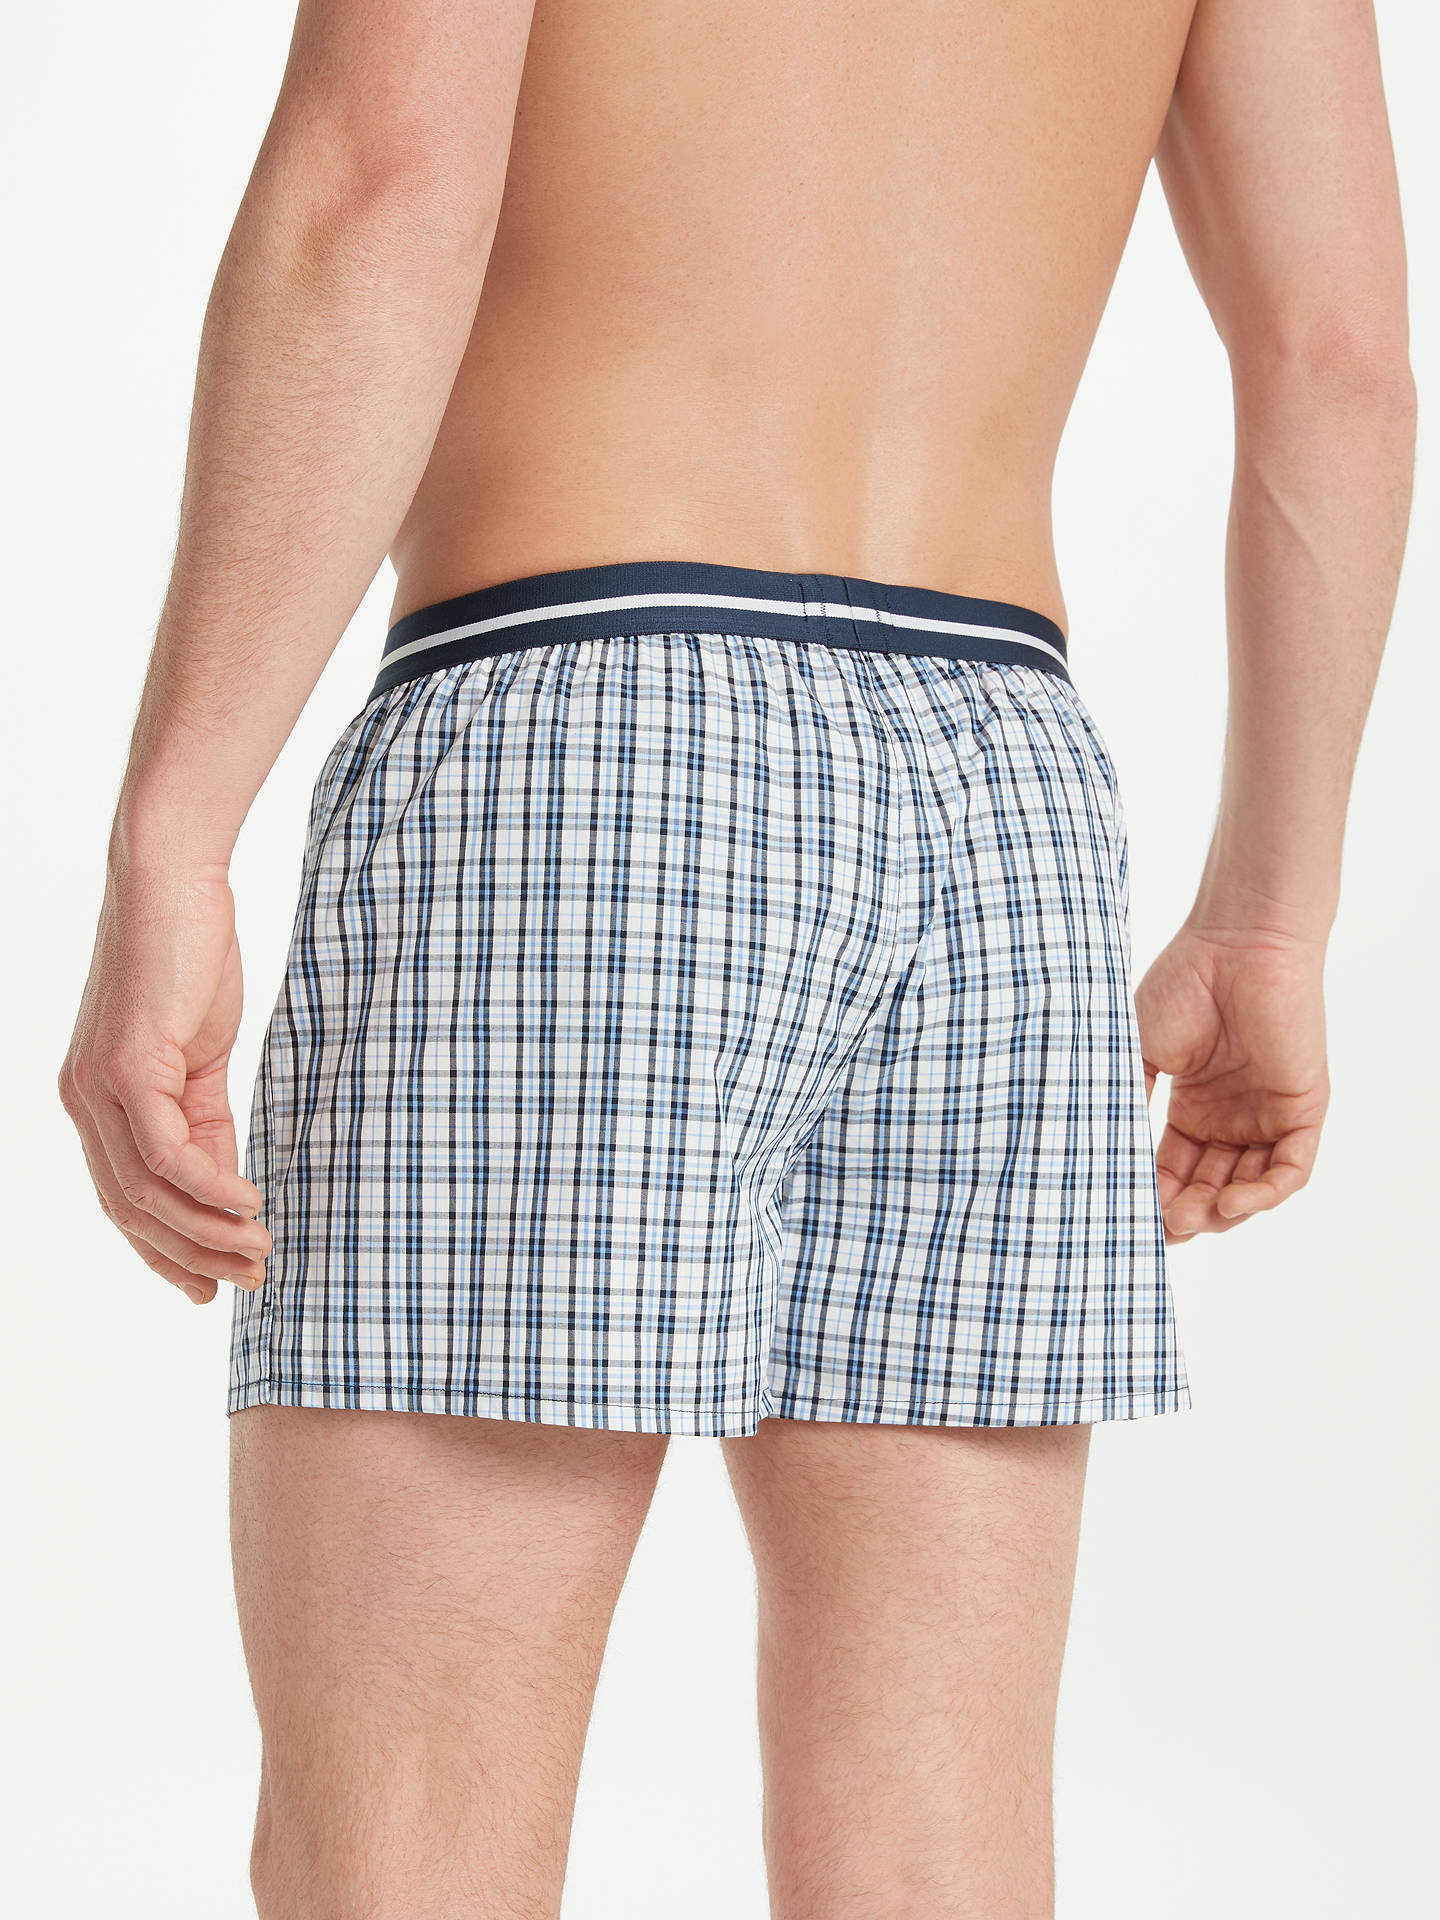 BuyBOSS Check Cotton Boxers, Pack of 2, Blue, S Online at johnlewis.com